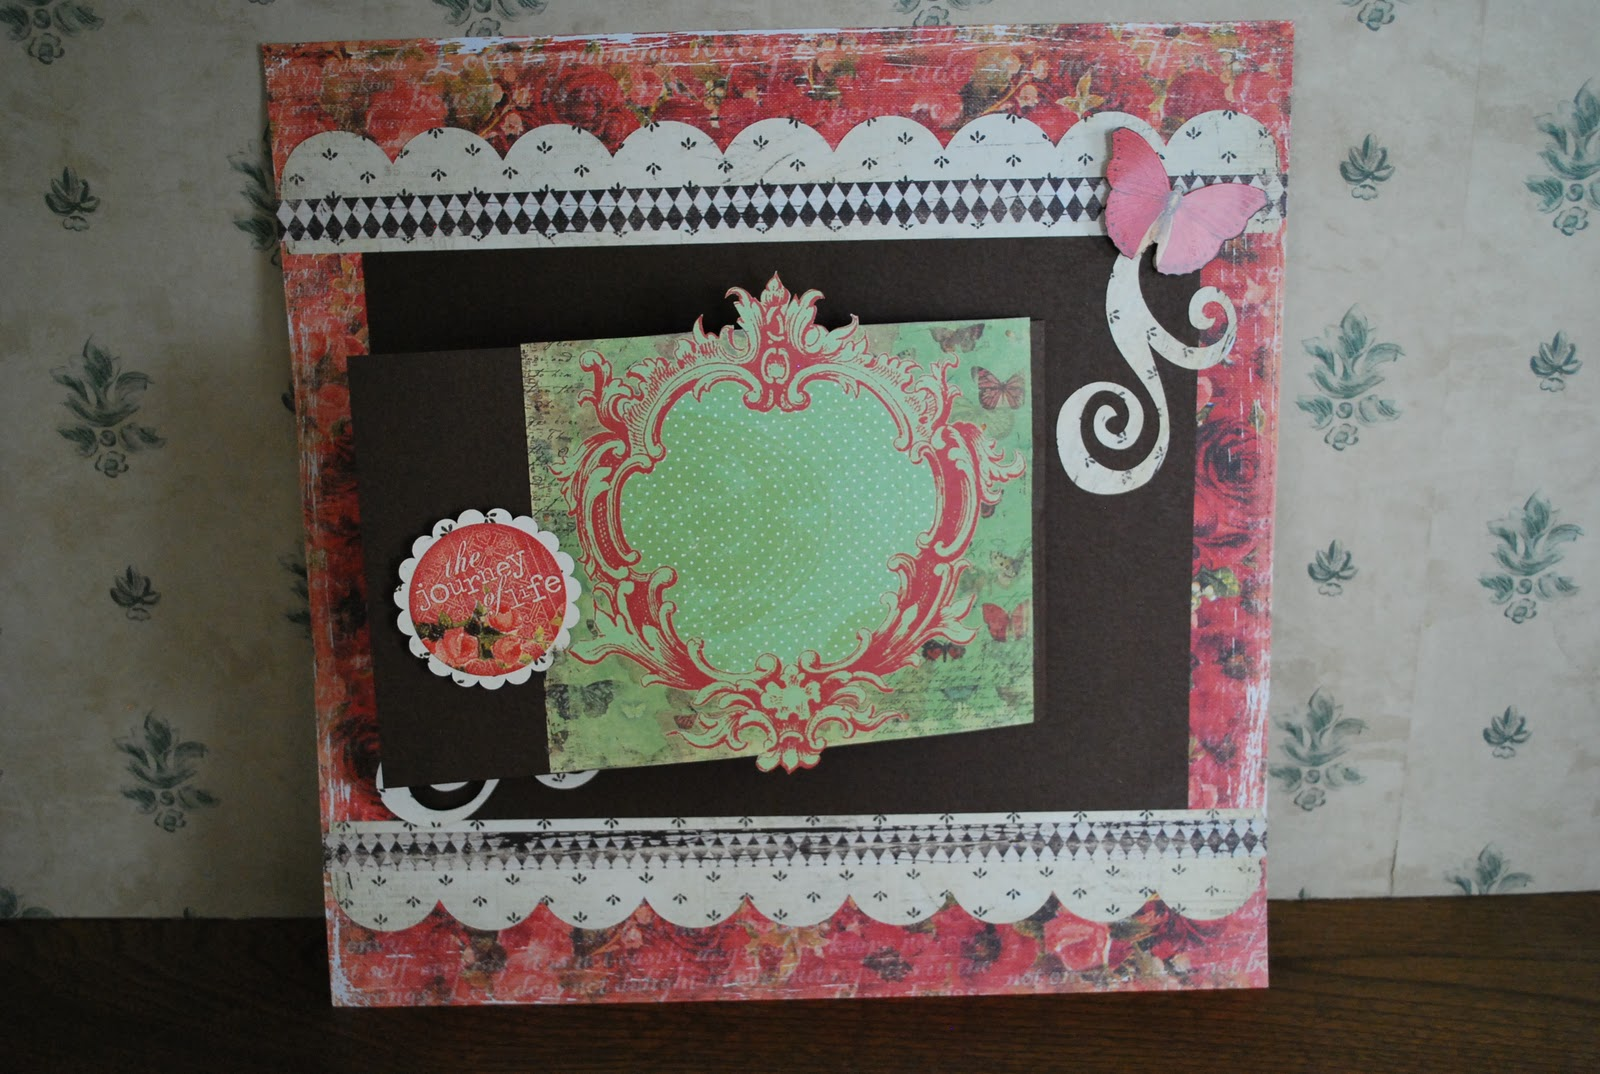 Scrapbook ideas pop up - I Just Recently Took A Class On Pop Up Scrapbook Pages We Did A Double Page Layout Using The Sizzix Pop Up Dies Designed By Karen Burniston She Also